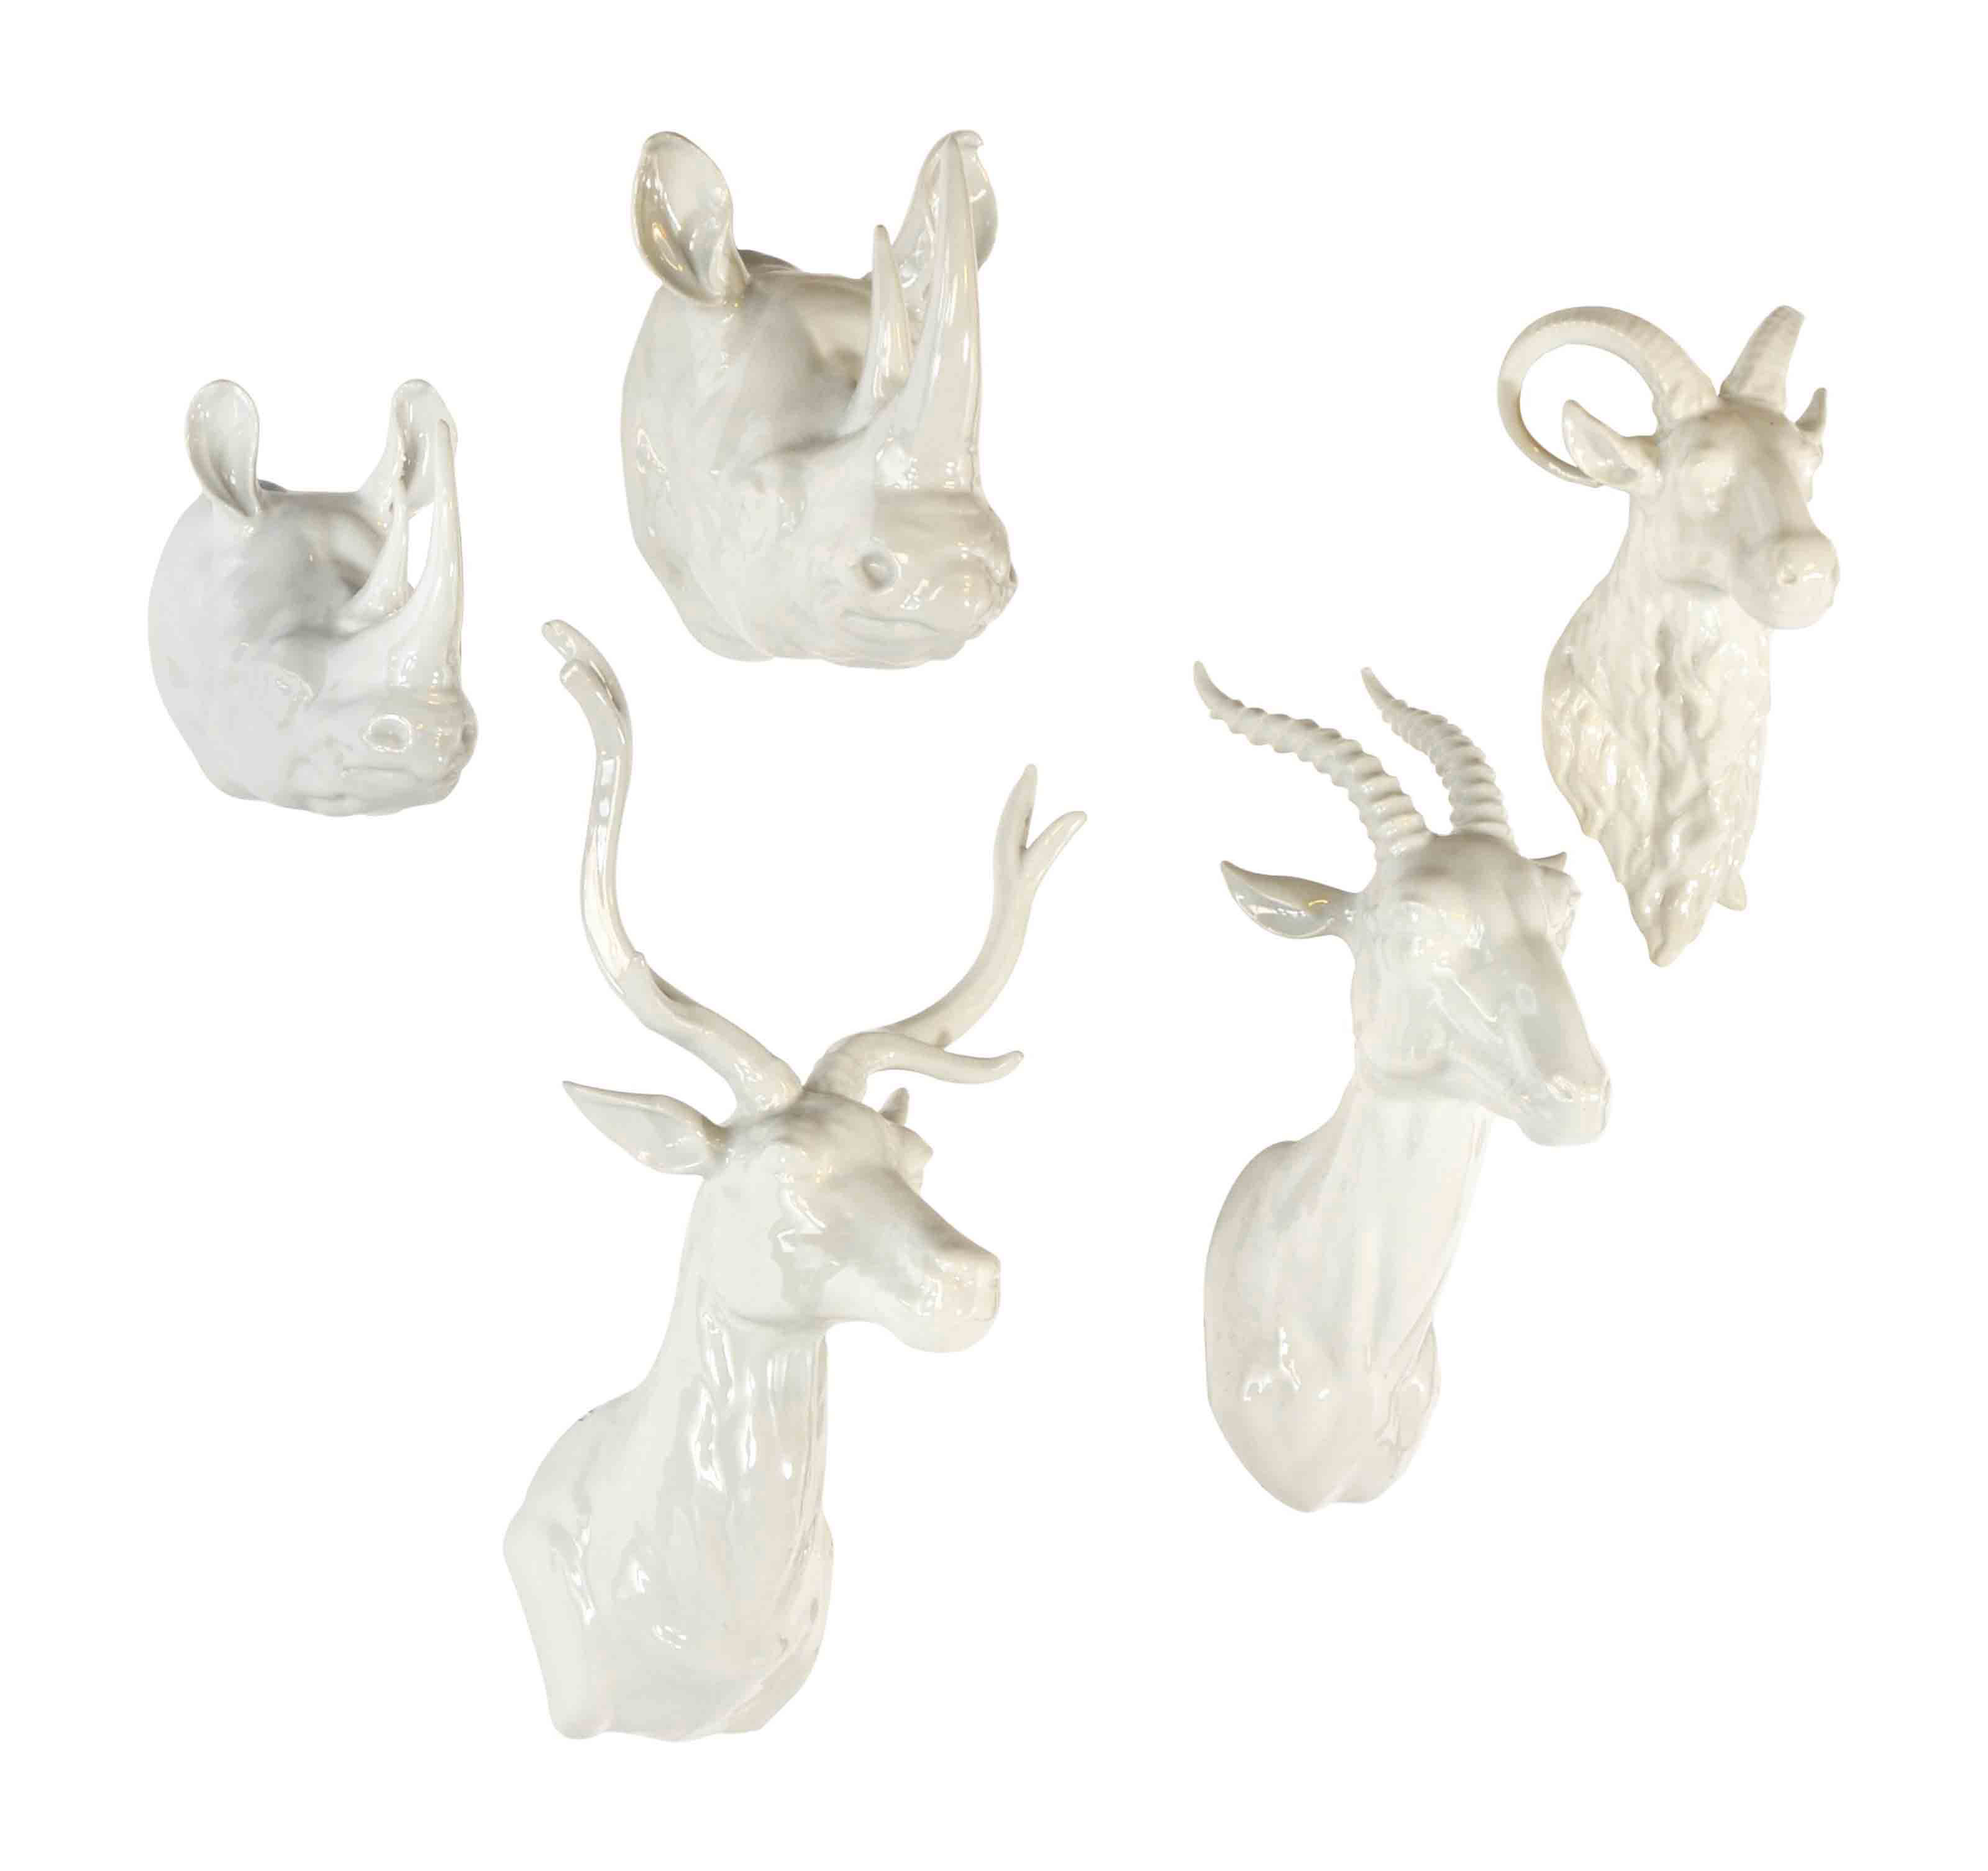 White Porcelain Deer Head Five Continental White Glazed Porcelain Trophy Heads